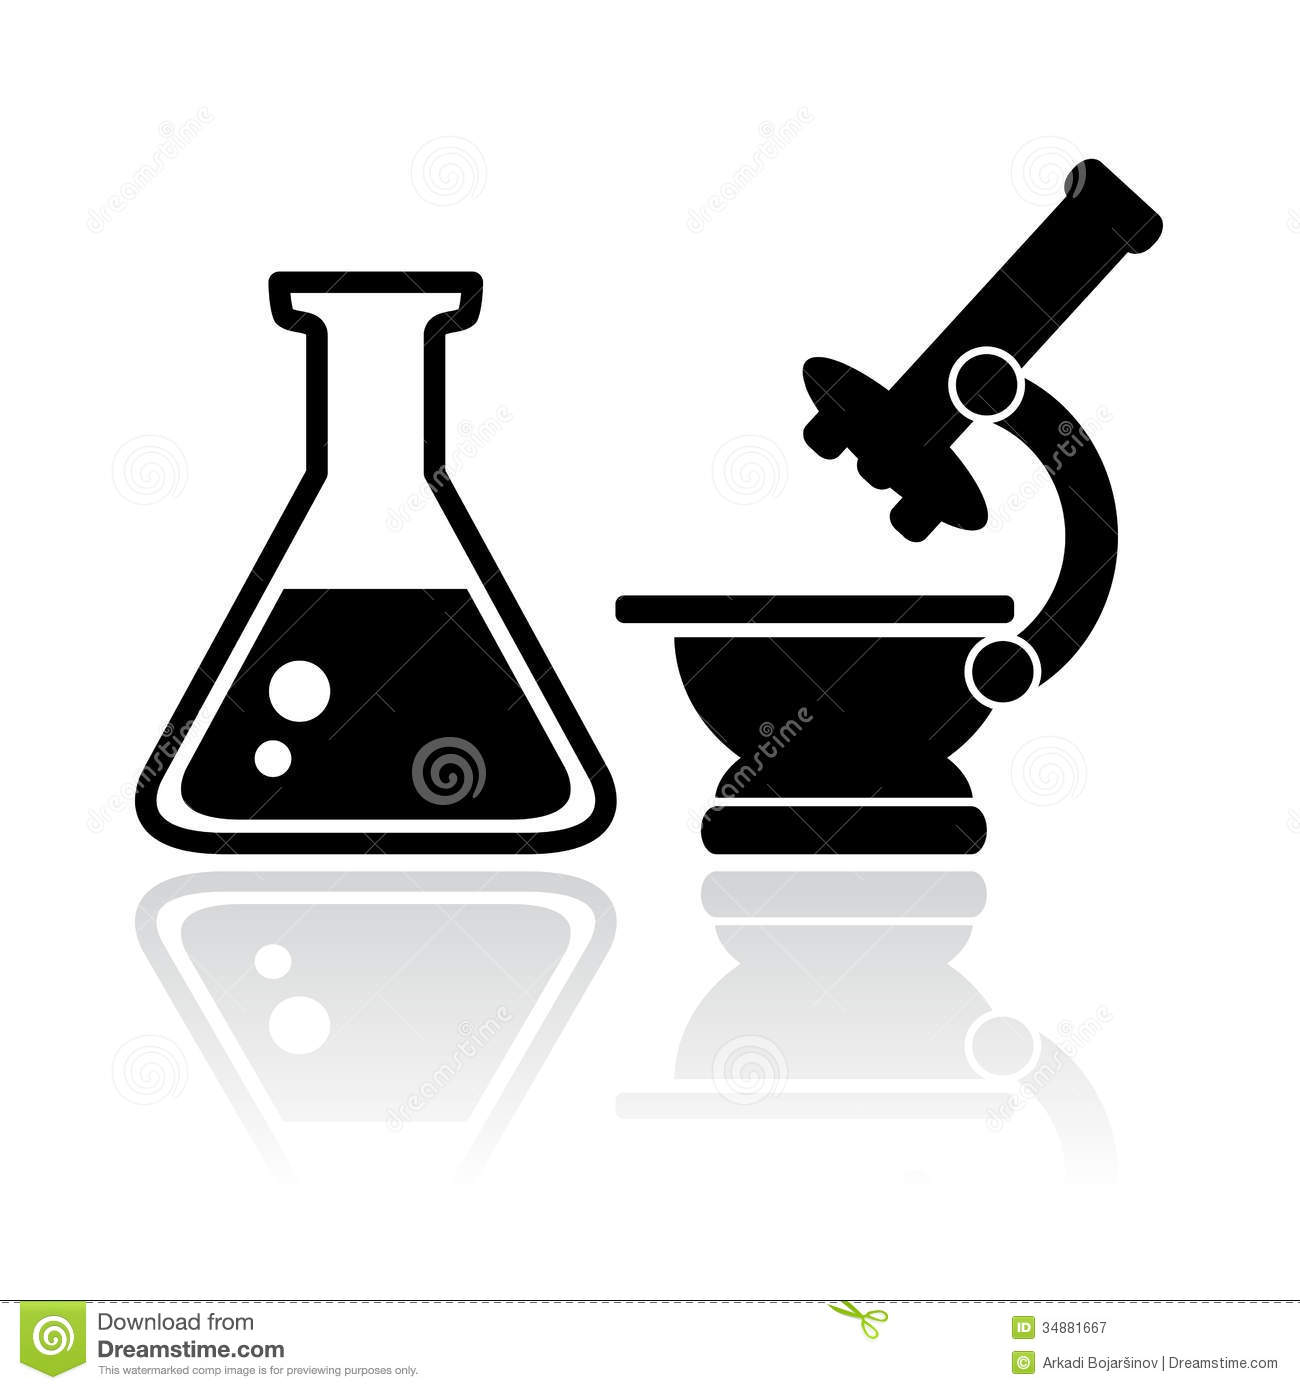 science vector icons stock vector illustration of label 34881667 rh dreamstime com free vector science symbols free vector science symbols